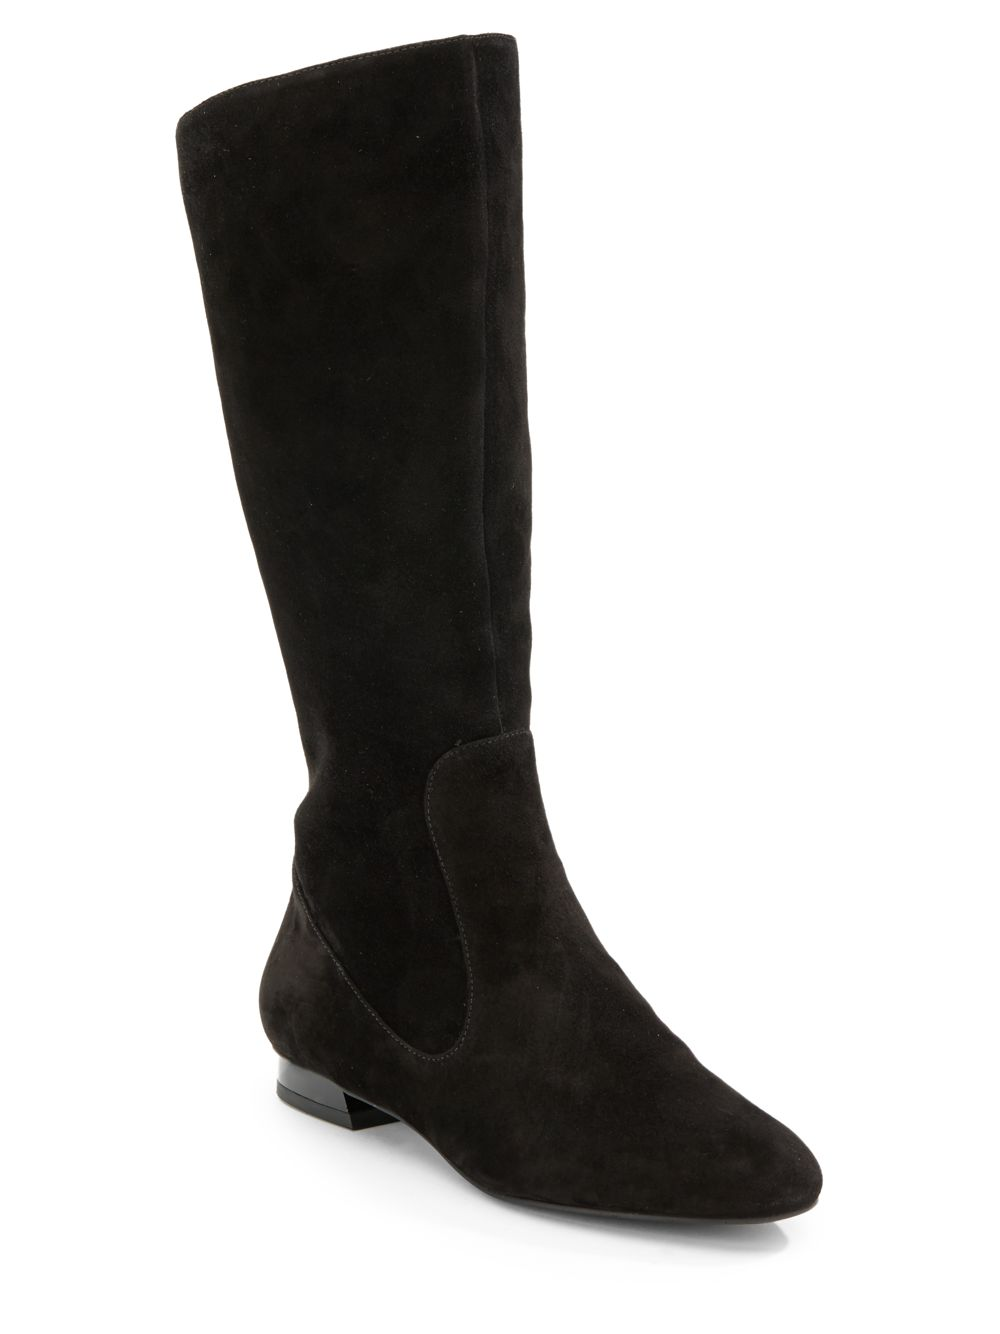 via spiga kneehigh suede boots in black lyst